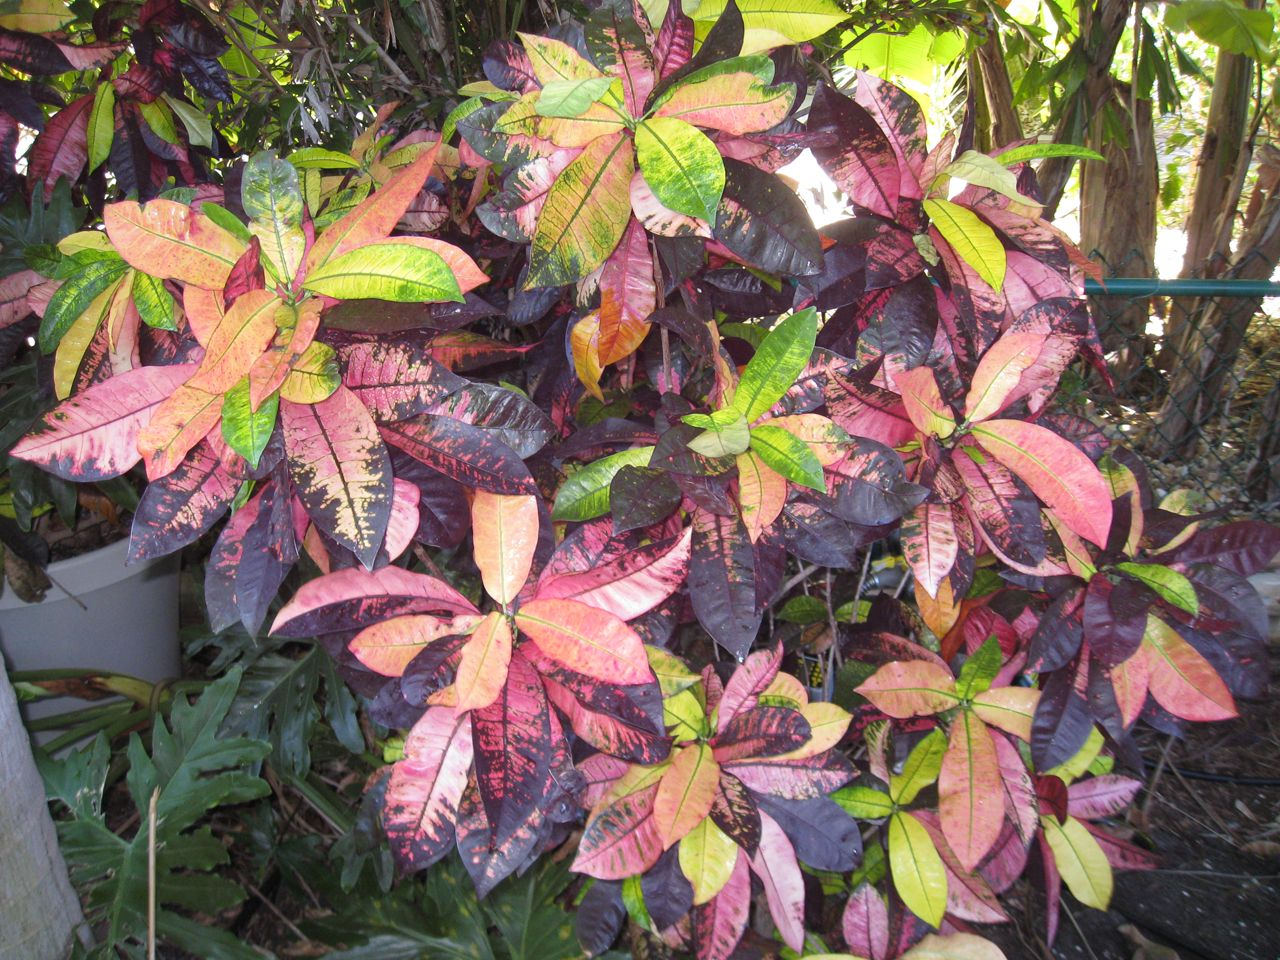 appleleaf the synonyms of this croton are the much more used mrs